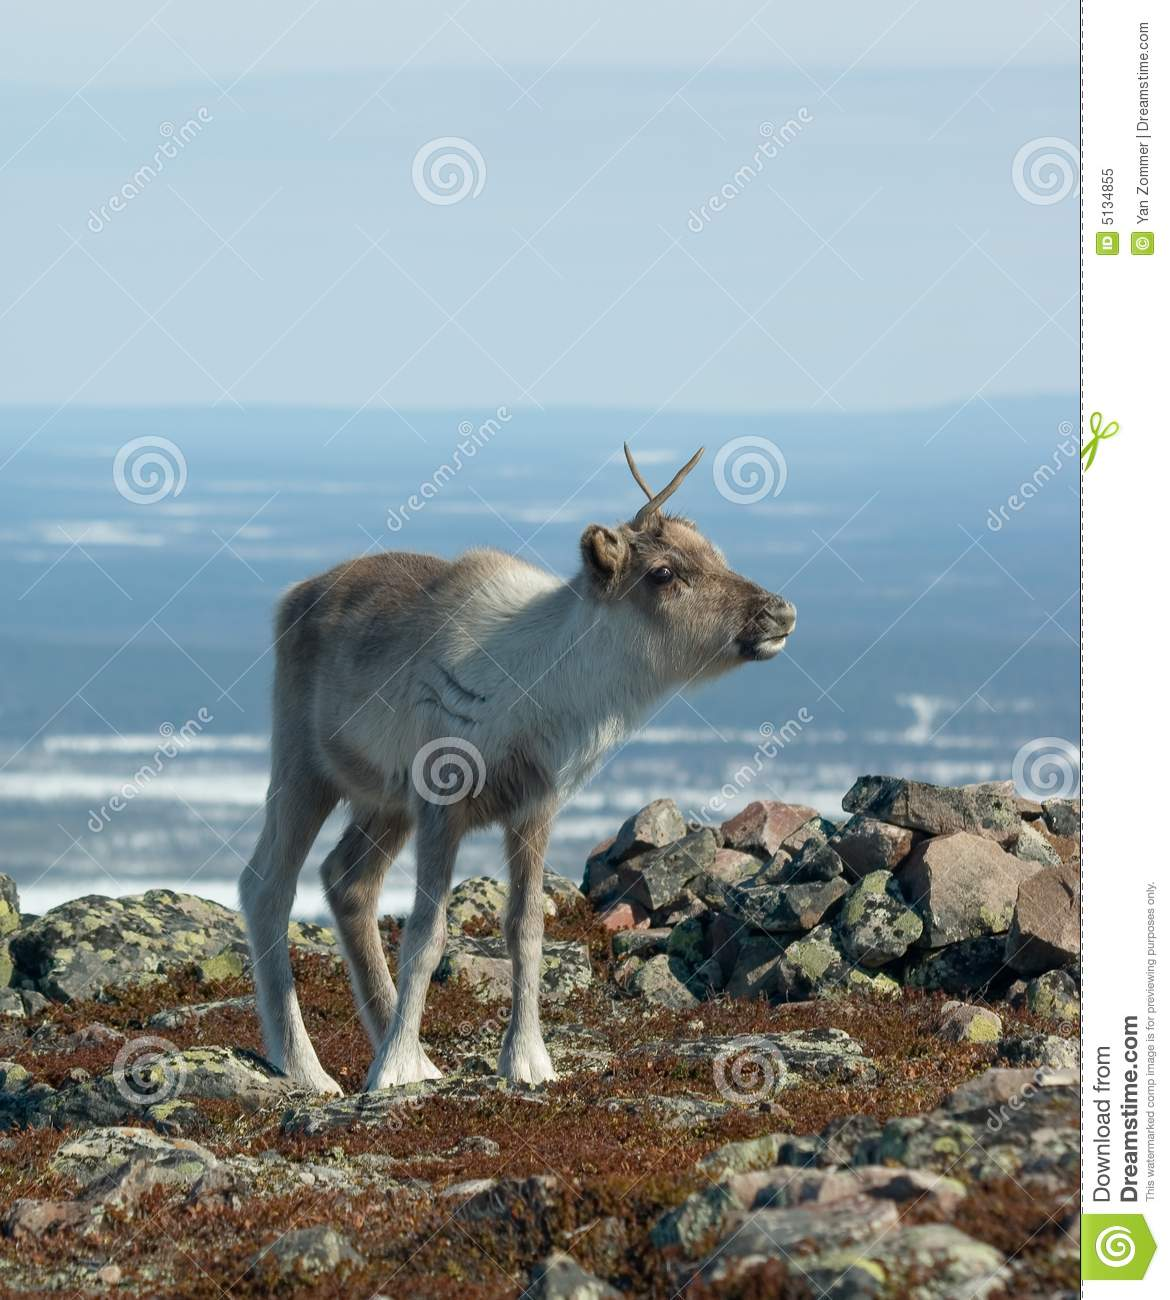 Baby reindeer royalty free stock photo image 5134855